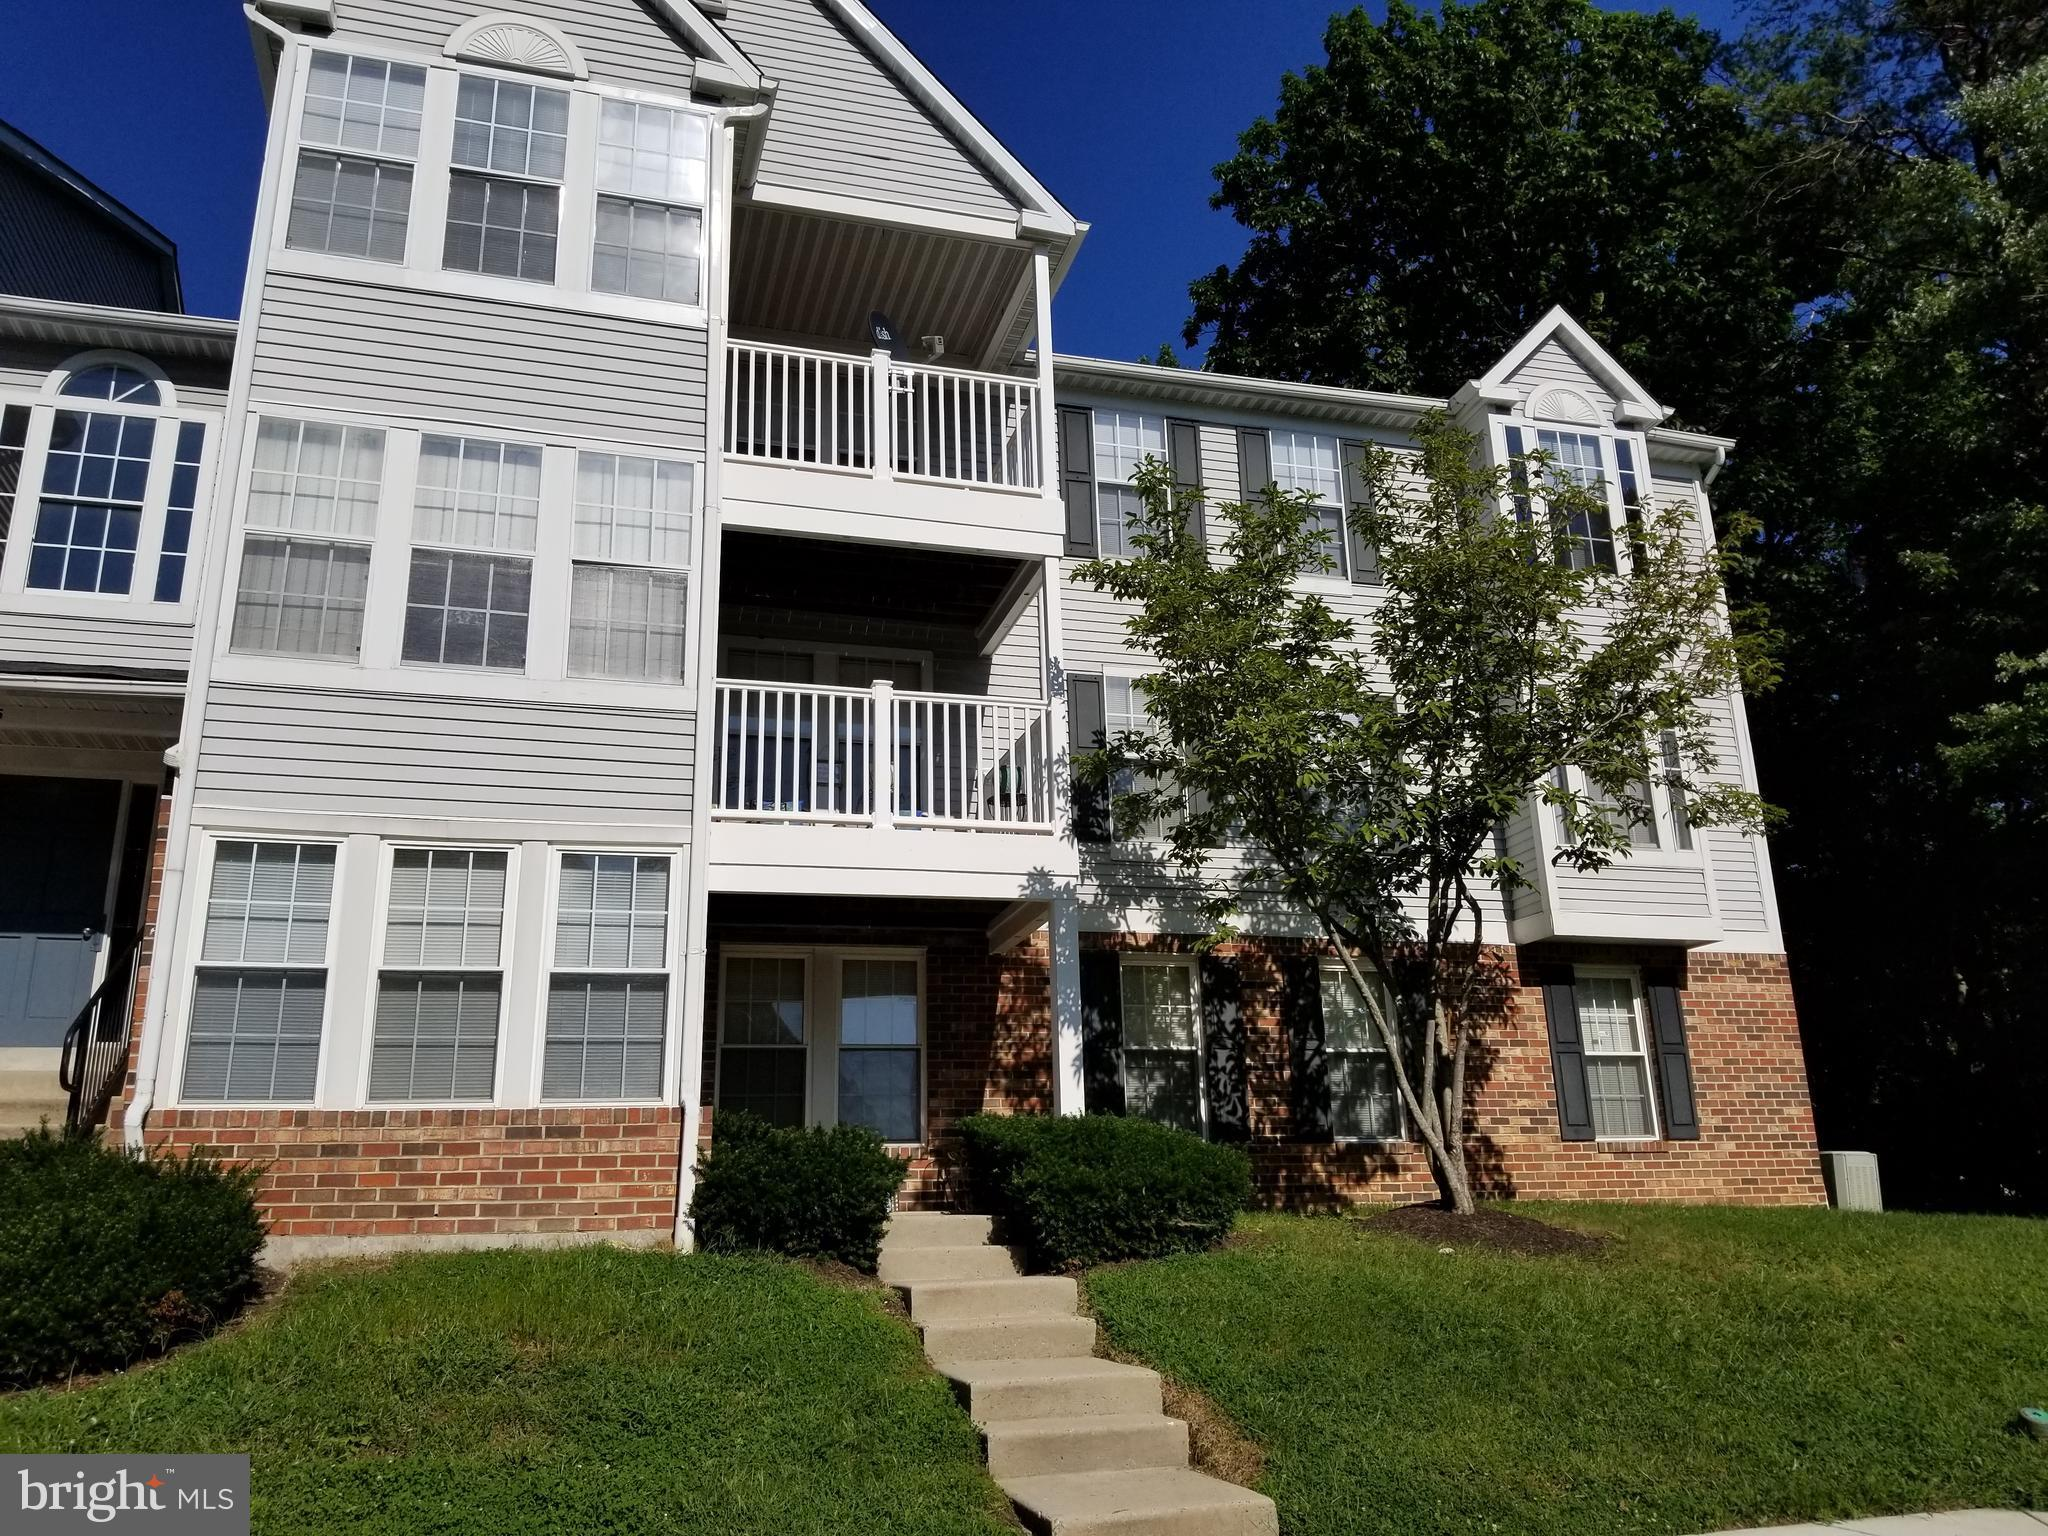 2nd floor unit features new paint and carpets. Breakfast bar to kitchen, extra closet storage space in master bedroom, sun/bonus room, laundry washer & dryer, refrigerator, range, and mounted microwave. Association amenities include clubhouse, swimming pool, tennis courts, and playground.